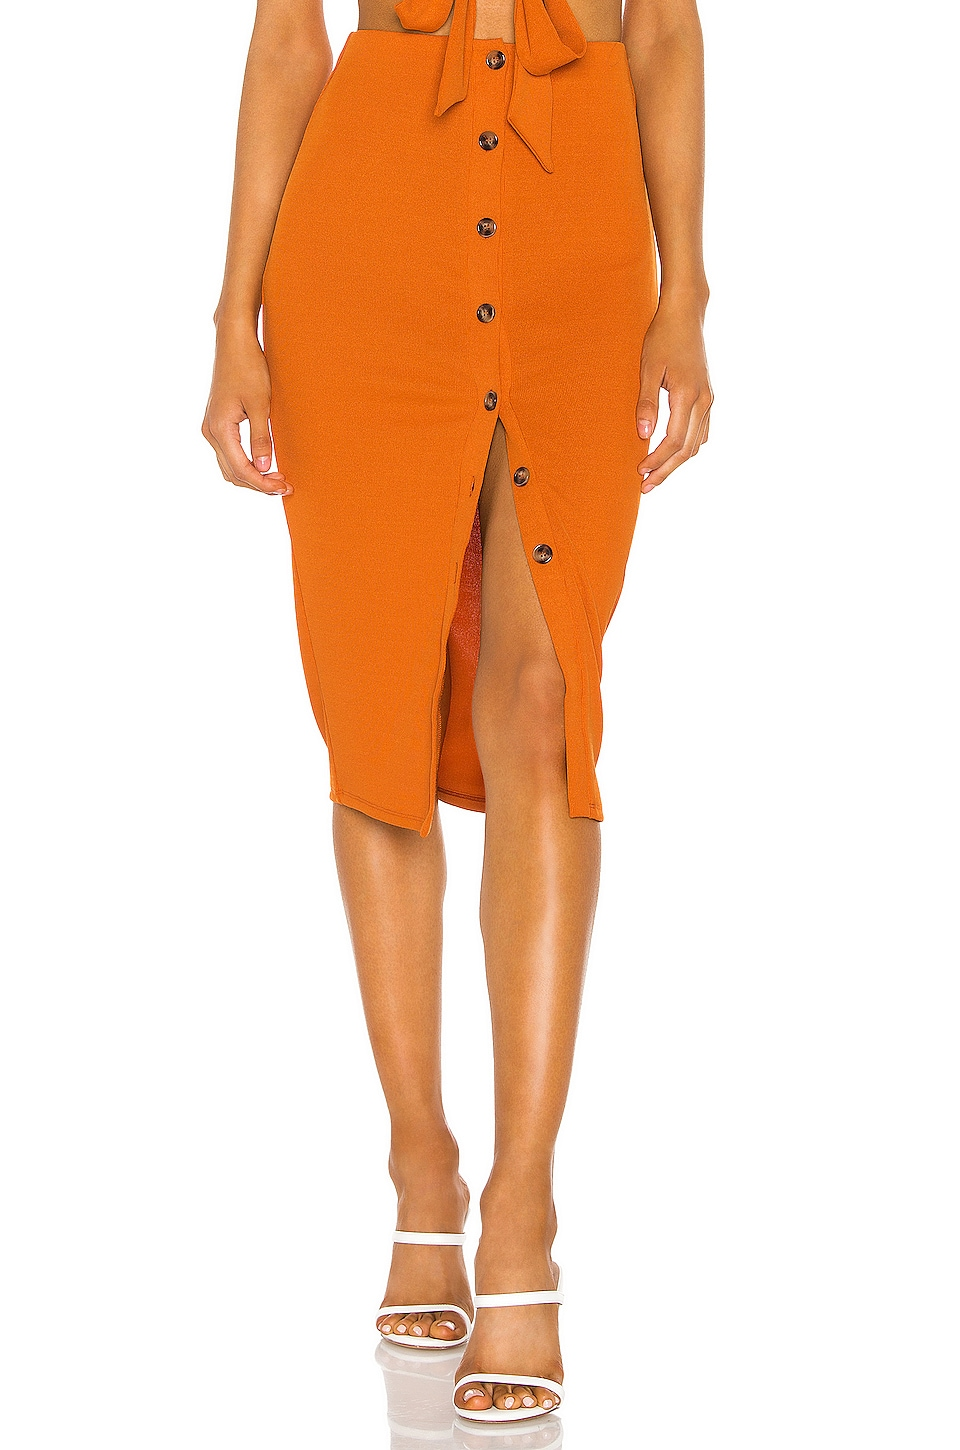 Privacy Please Augusta Midi Skirt in Moroccan Orange